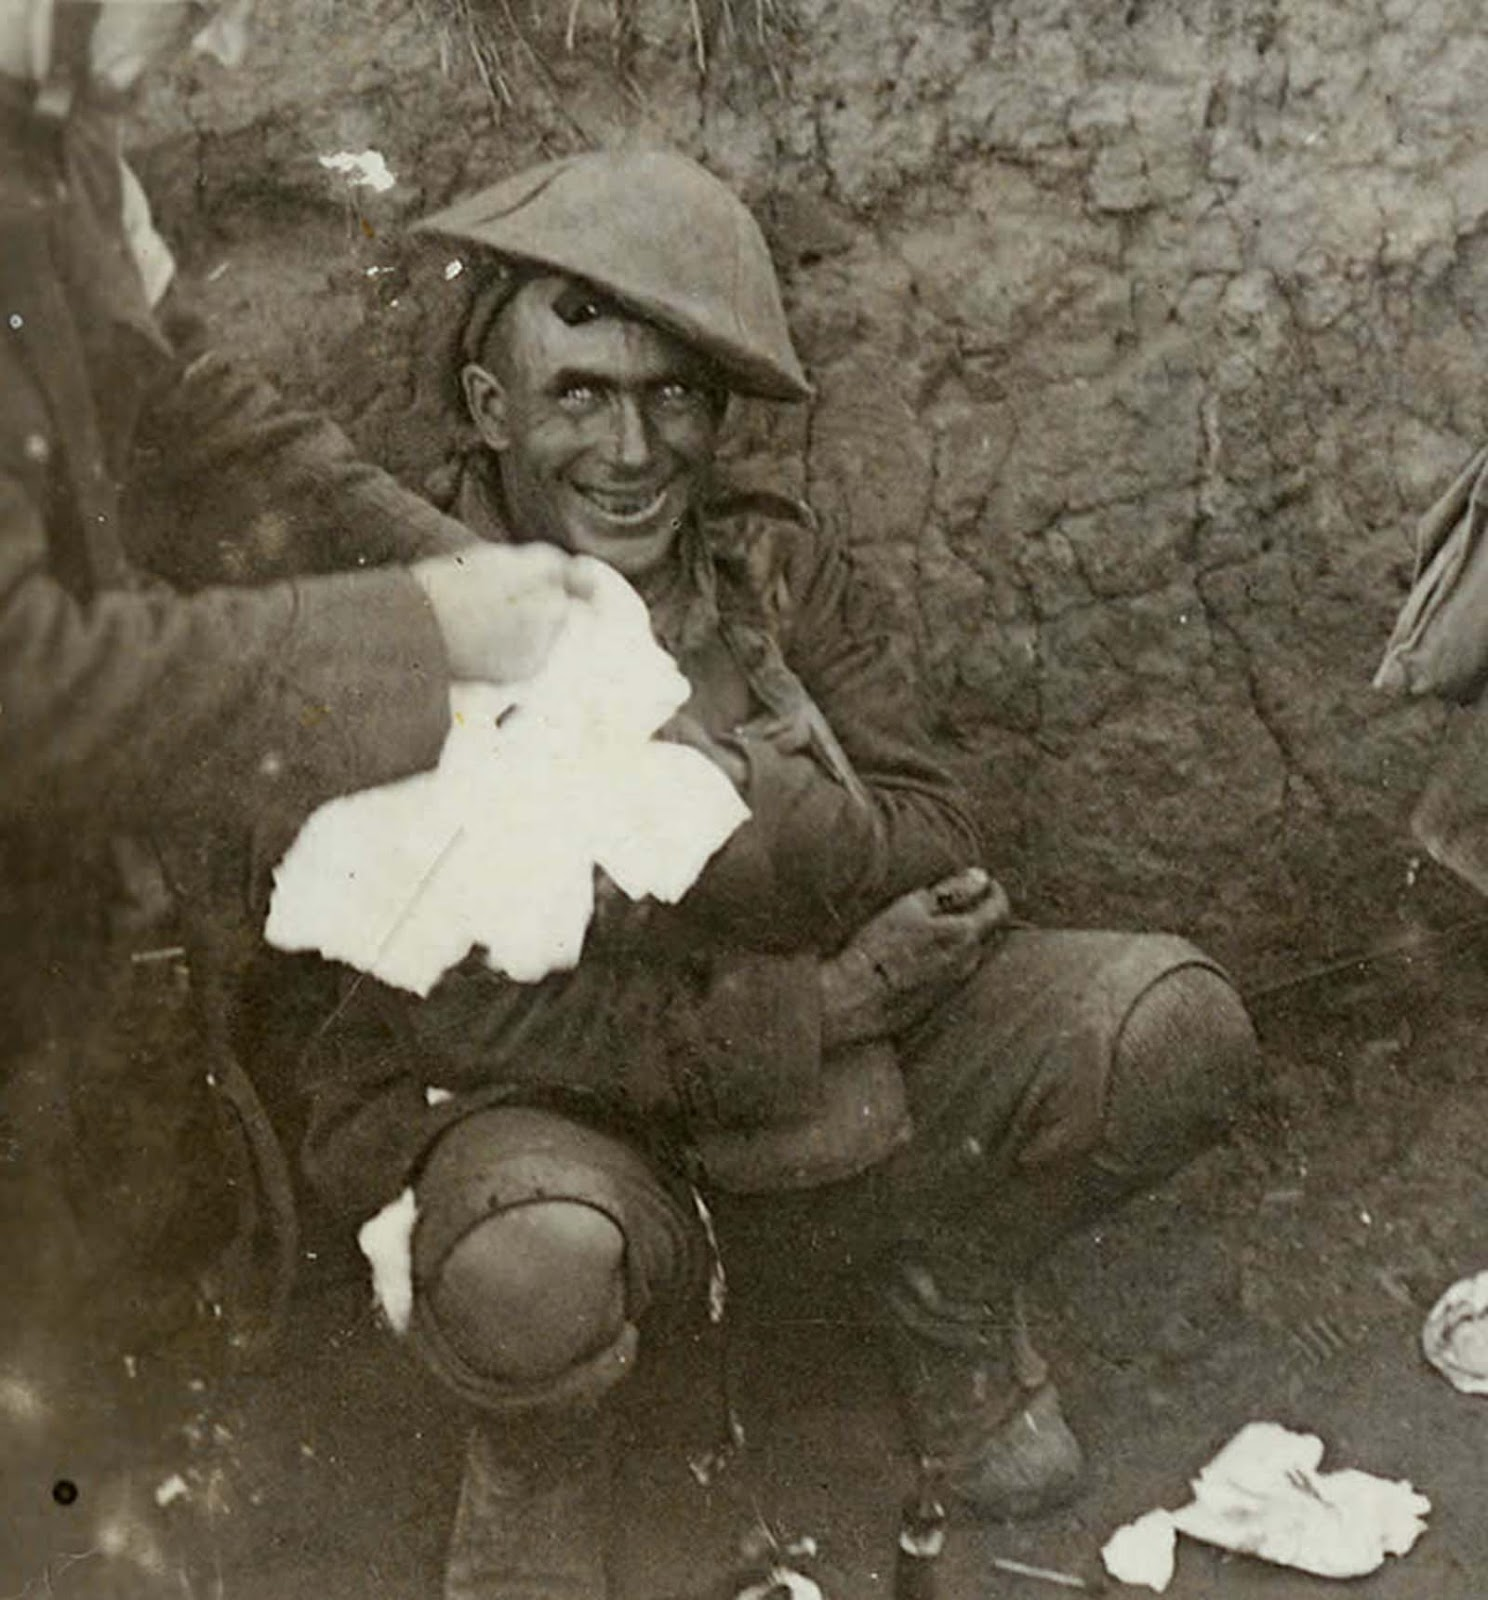 shell shocked soldier 1916 2